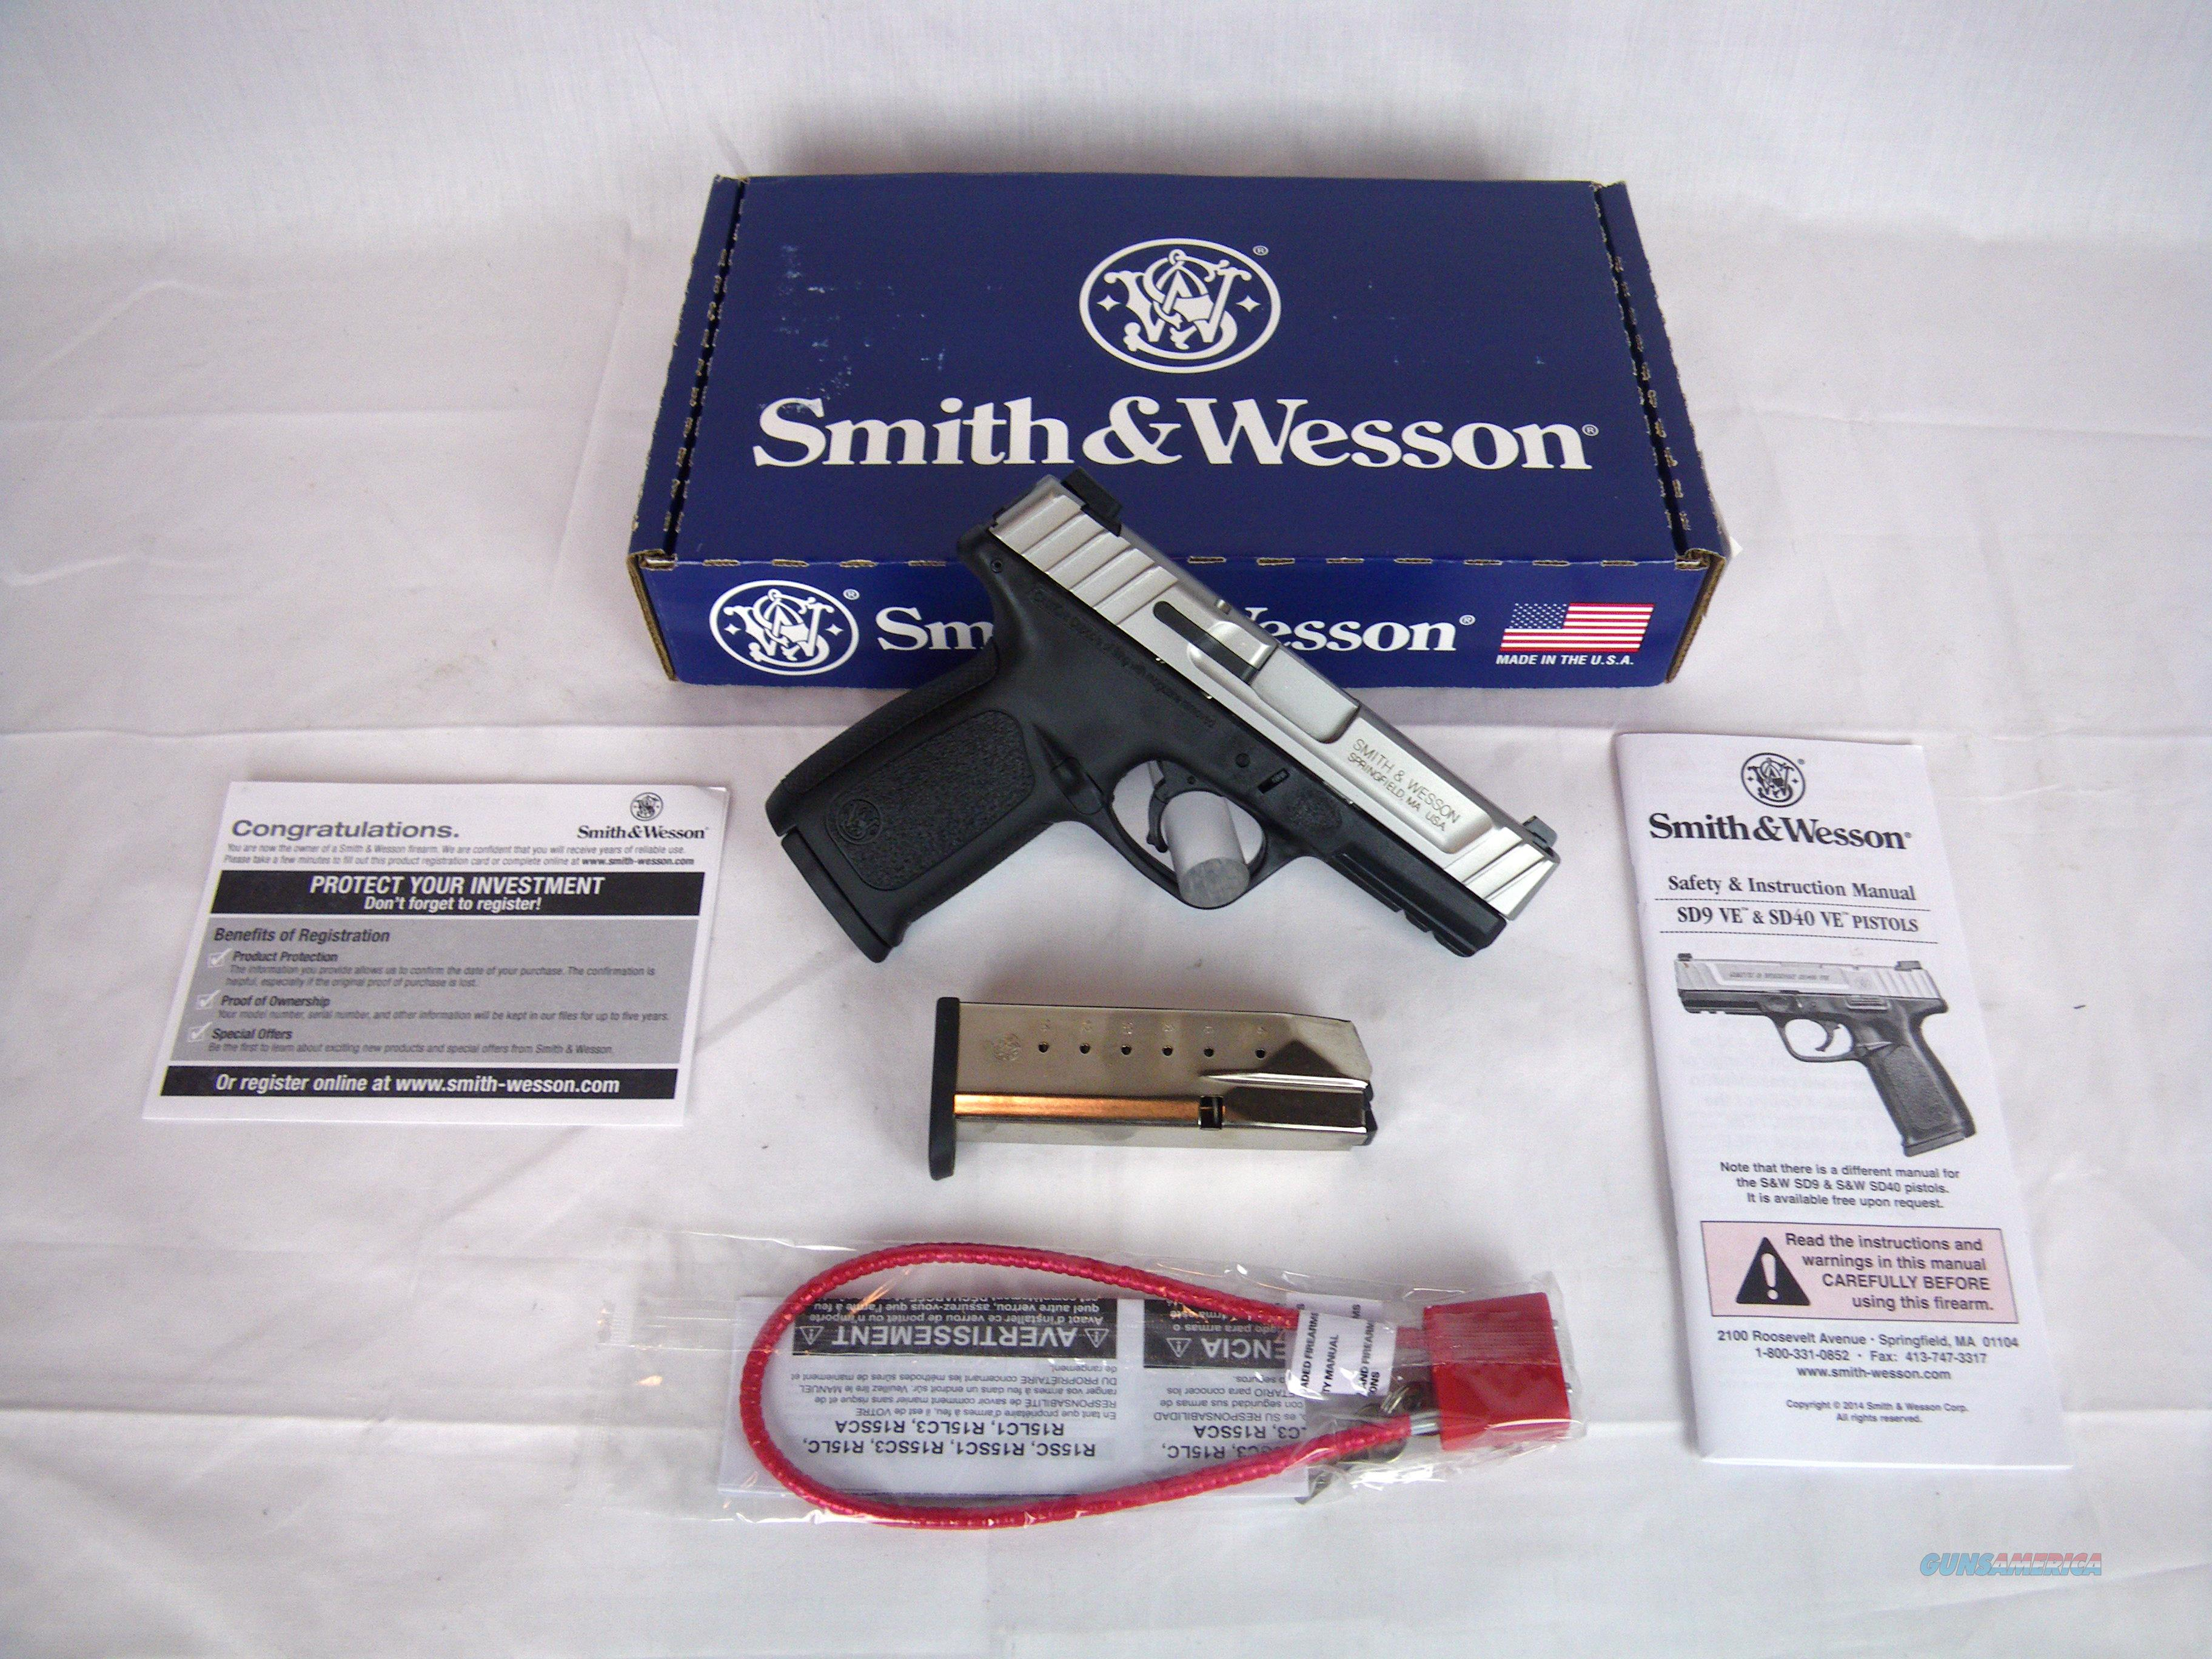 "Smith & Wesson SD40 VE 40S&W 4"" Stainless/Syn NEW #223400  Guns > Pistols > Smith & Wesson Pistols - Autos > Polymer Frame"